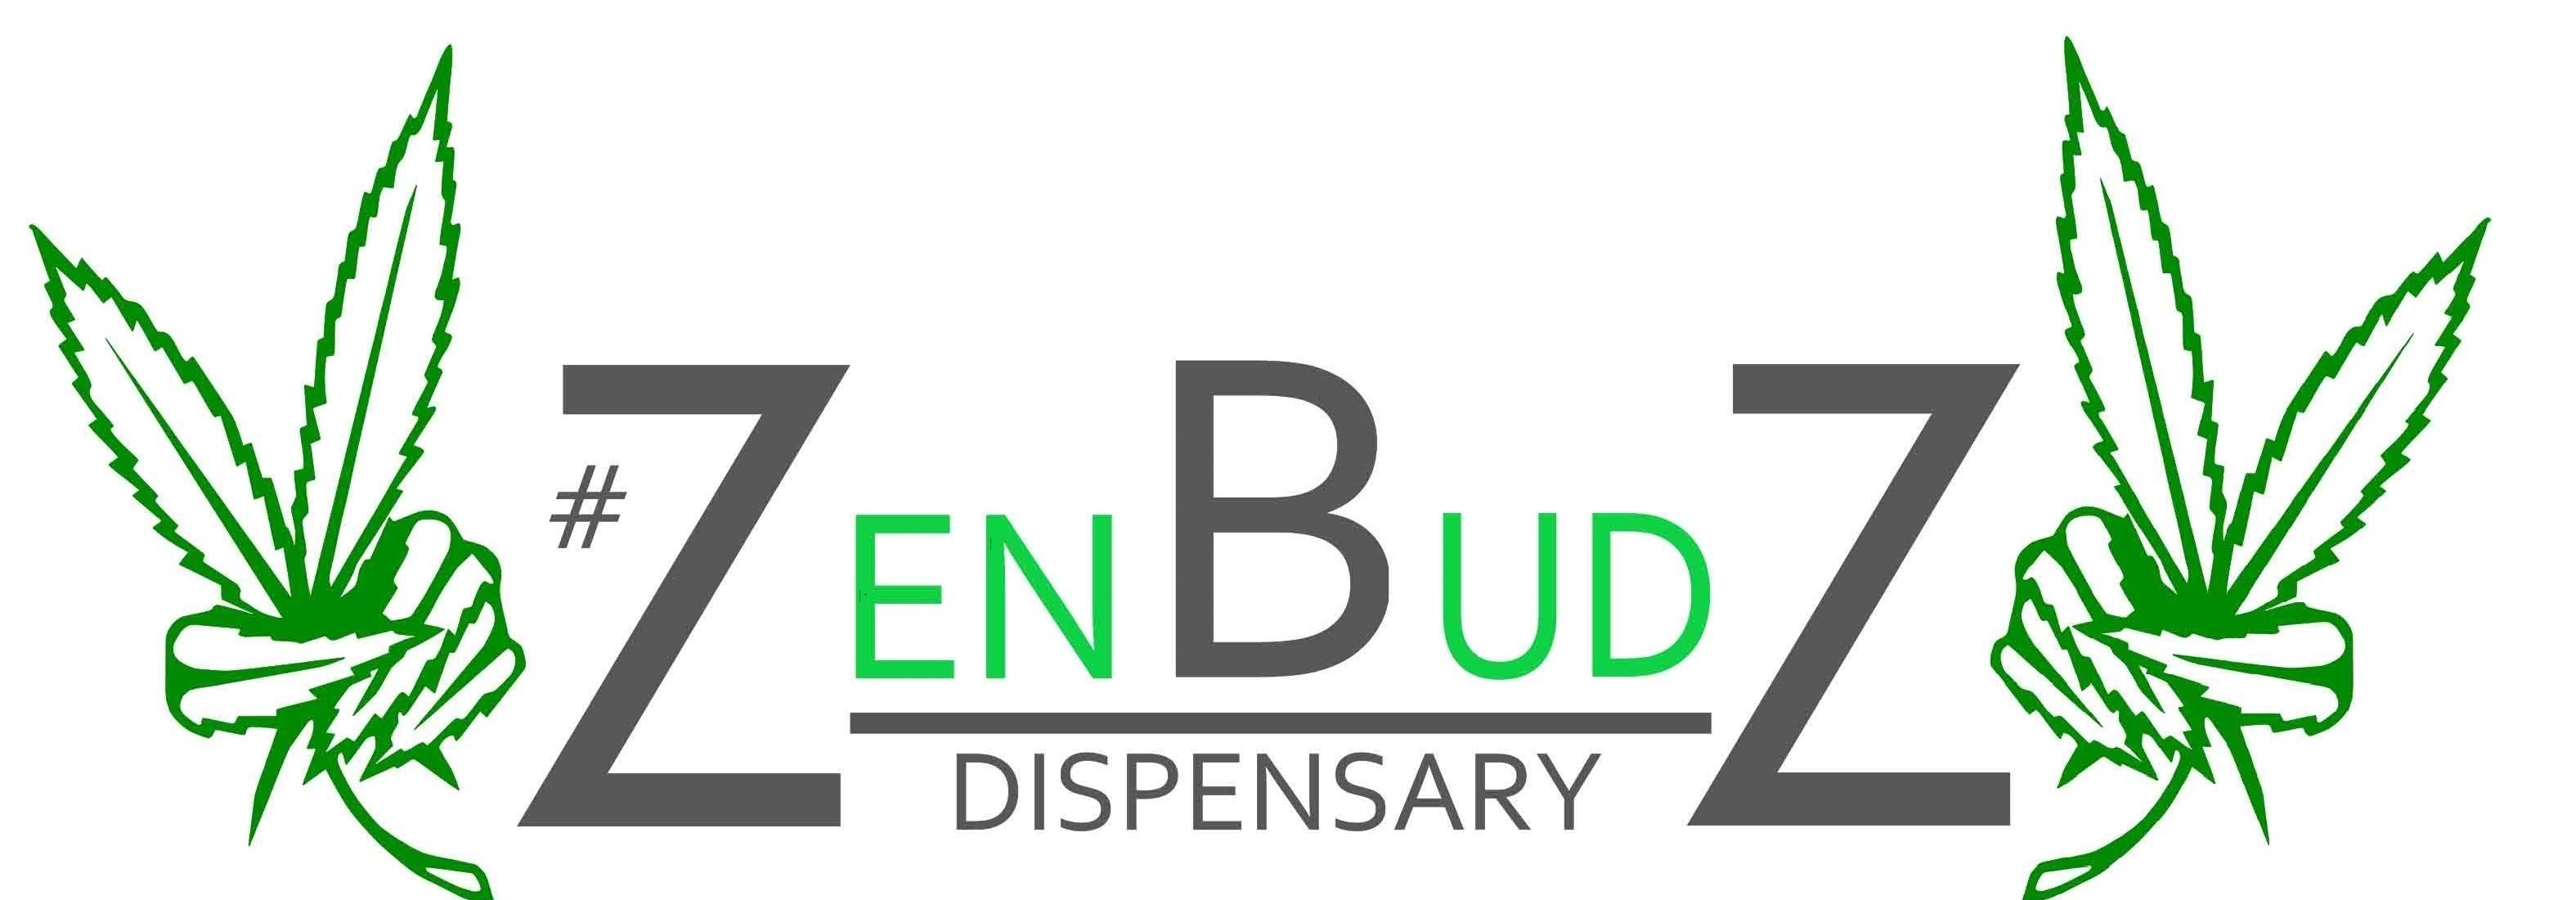 ZenBudZ Dispensary